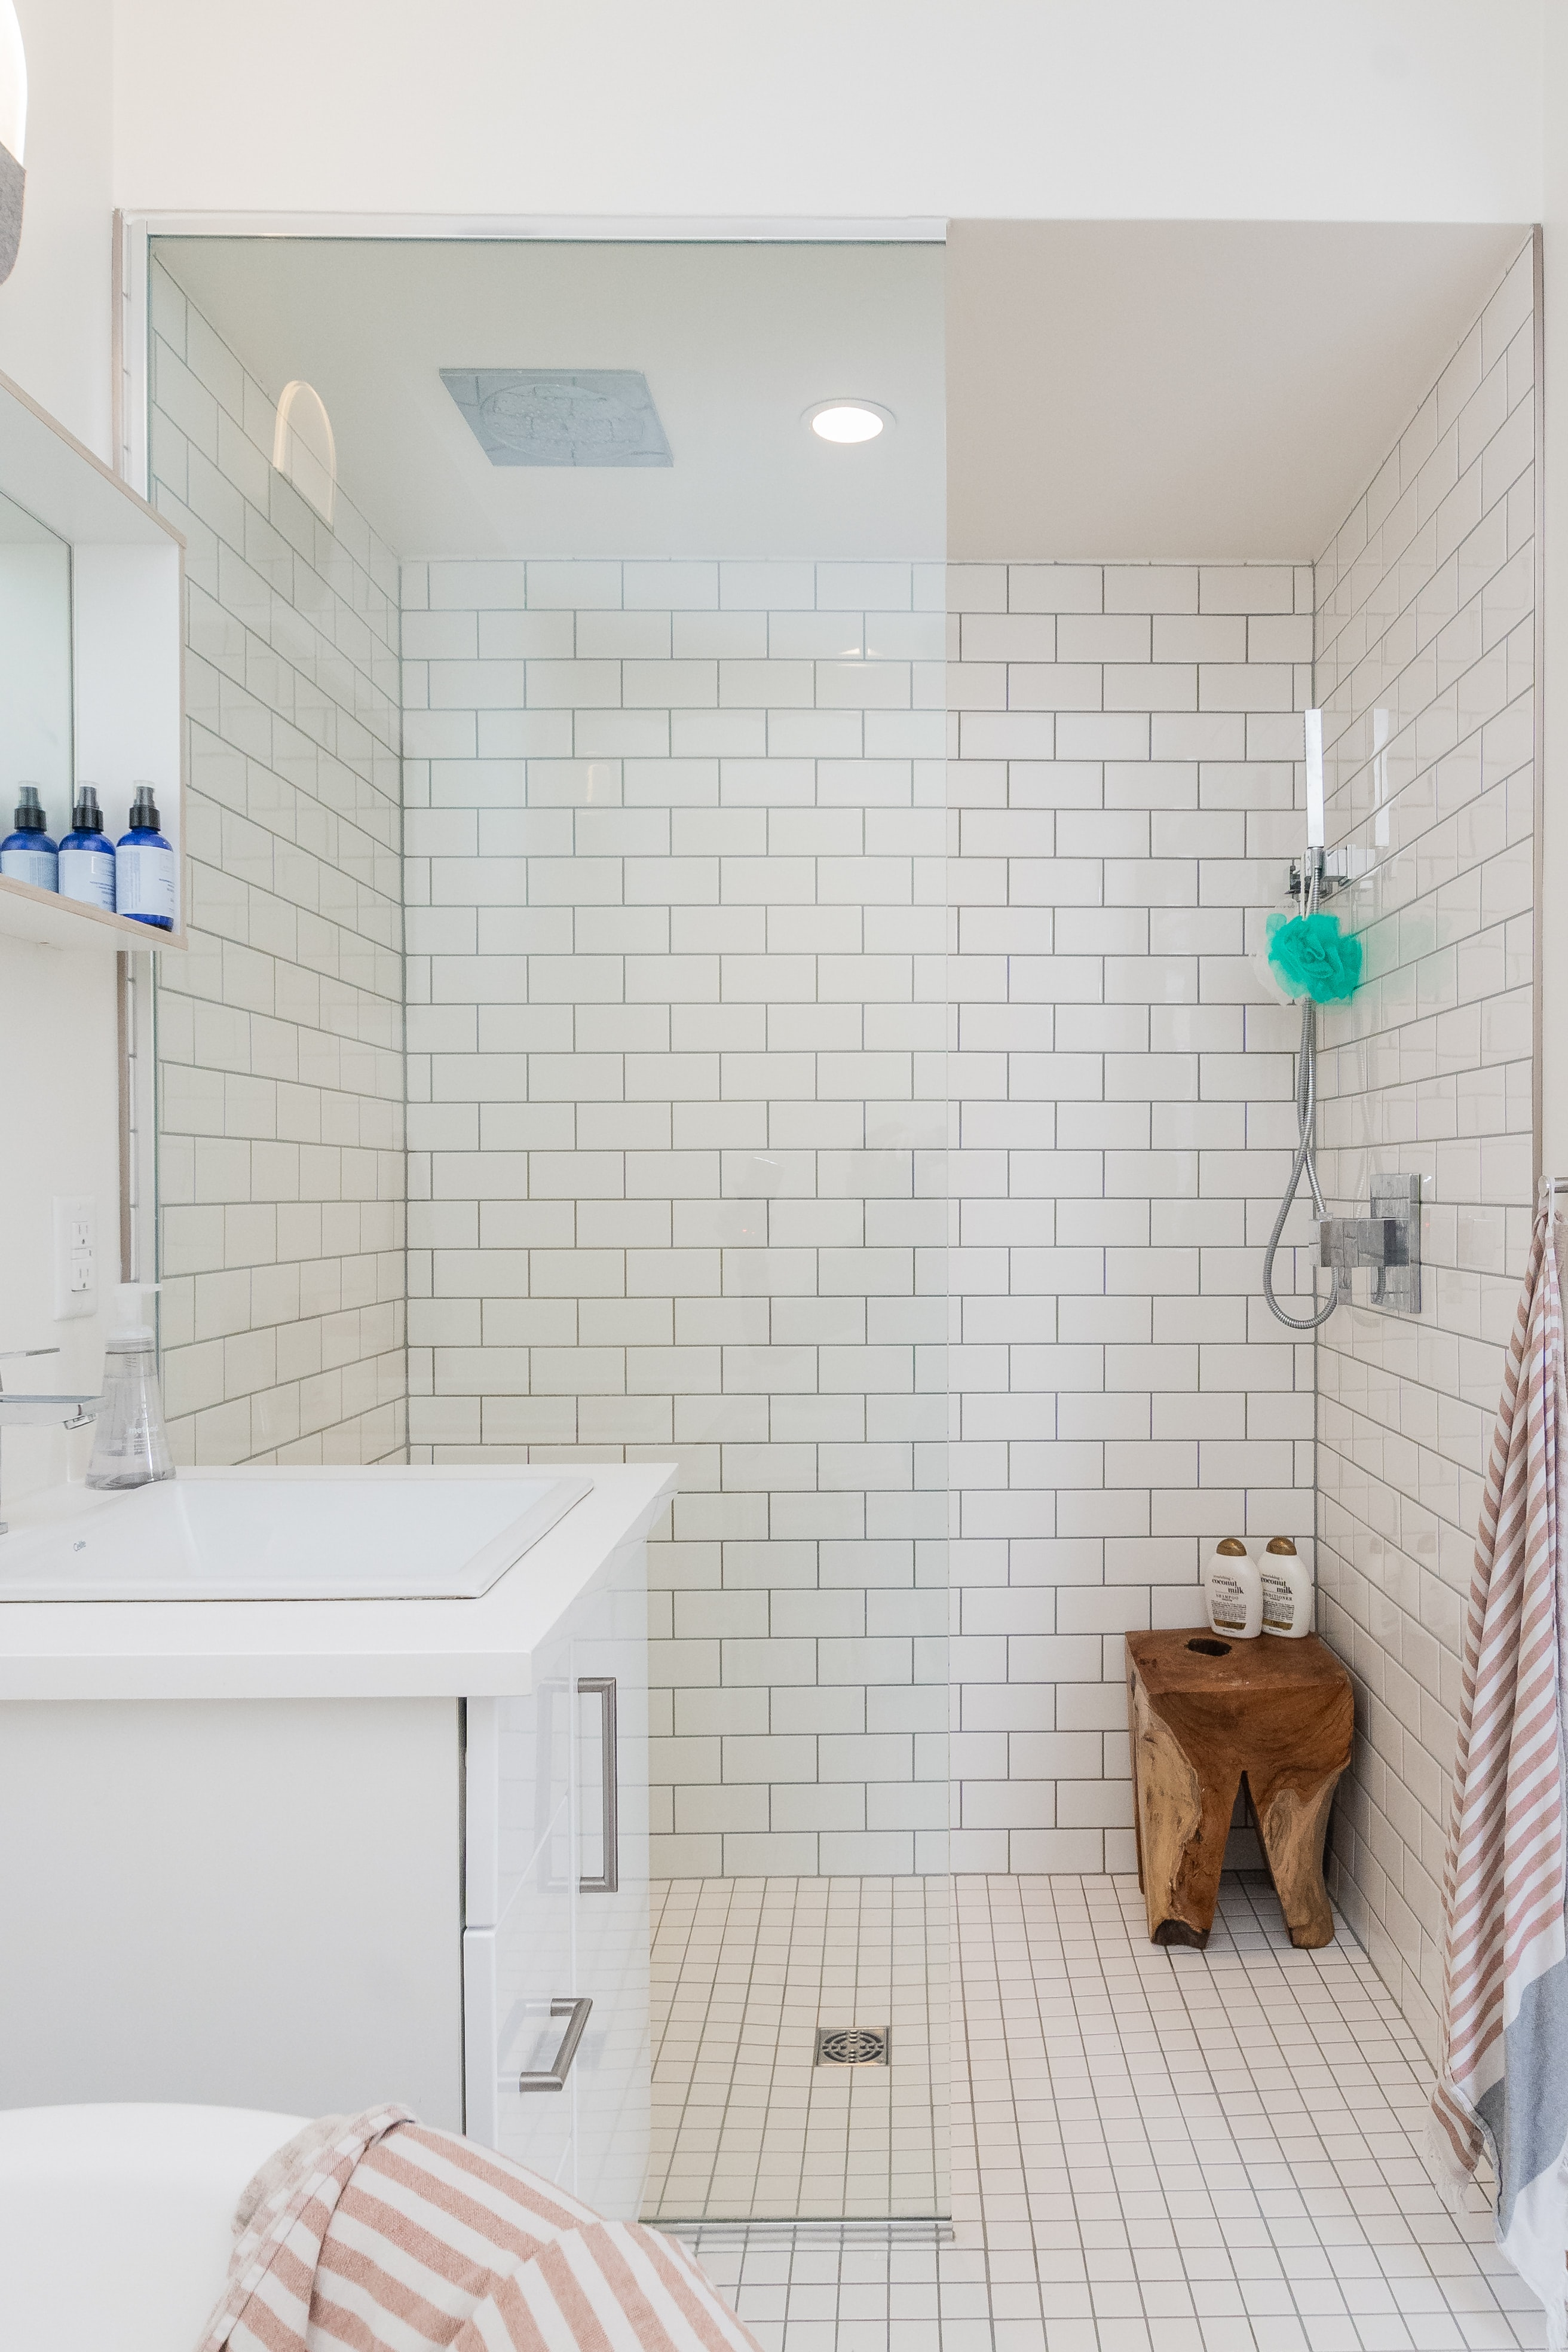 A small bathroom with wooden step stool.